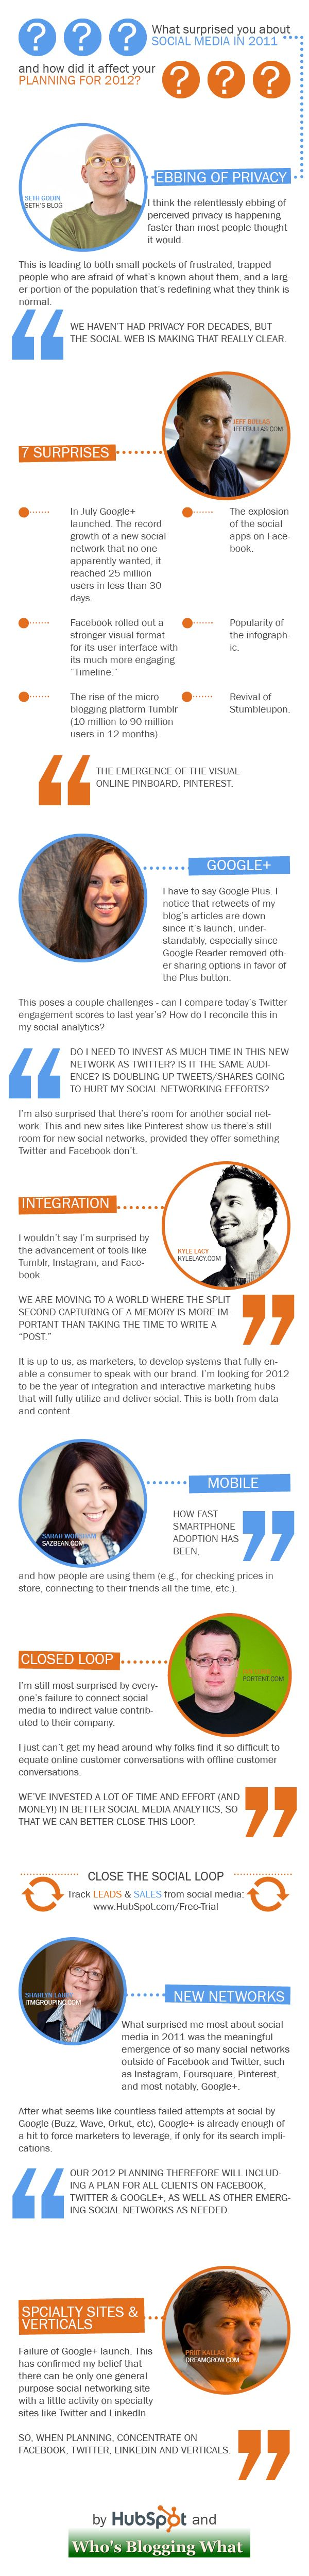 What Surprised You About Social Media in 2011?: Expert Discuss, Design Ideas, Quotes Ideas, Plans Infographic, Marketing Wisdom, Brochures Ideas, Socialmedia, Marketing Infographic, 2012 Plans